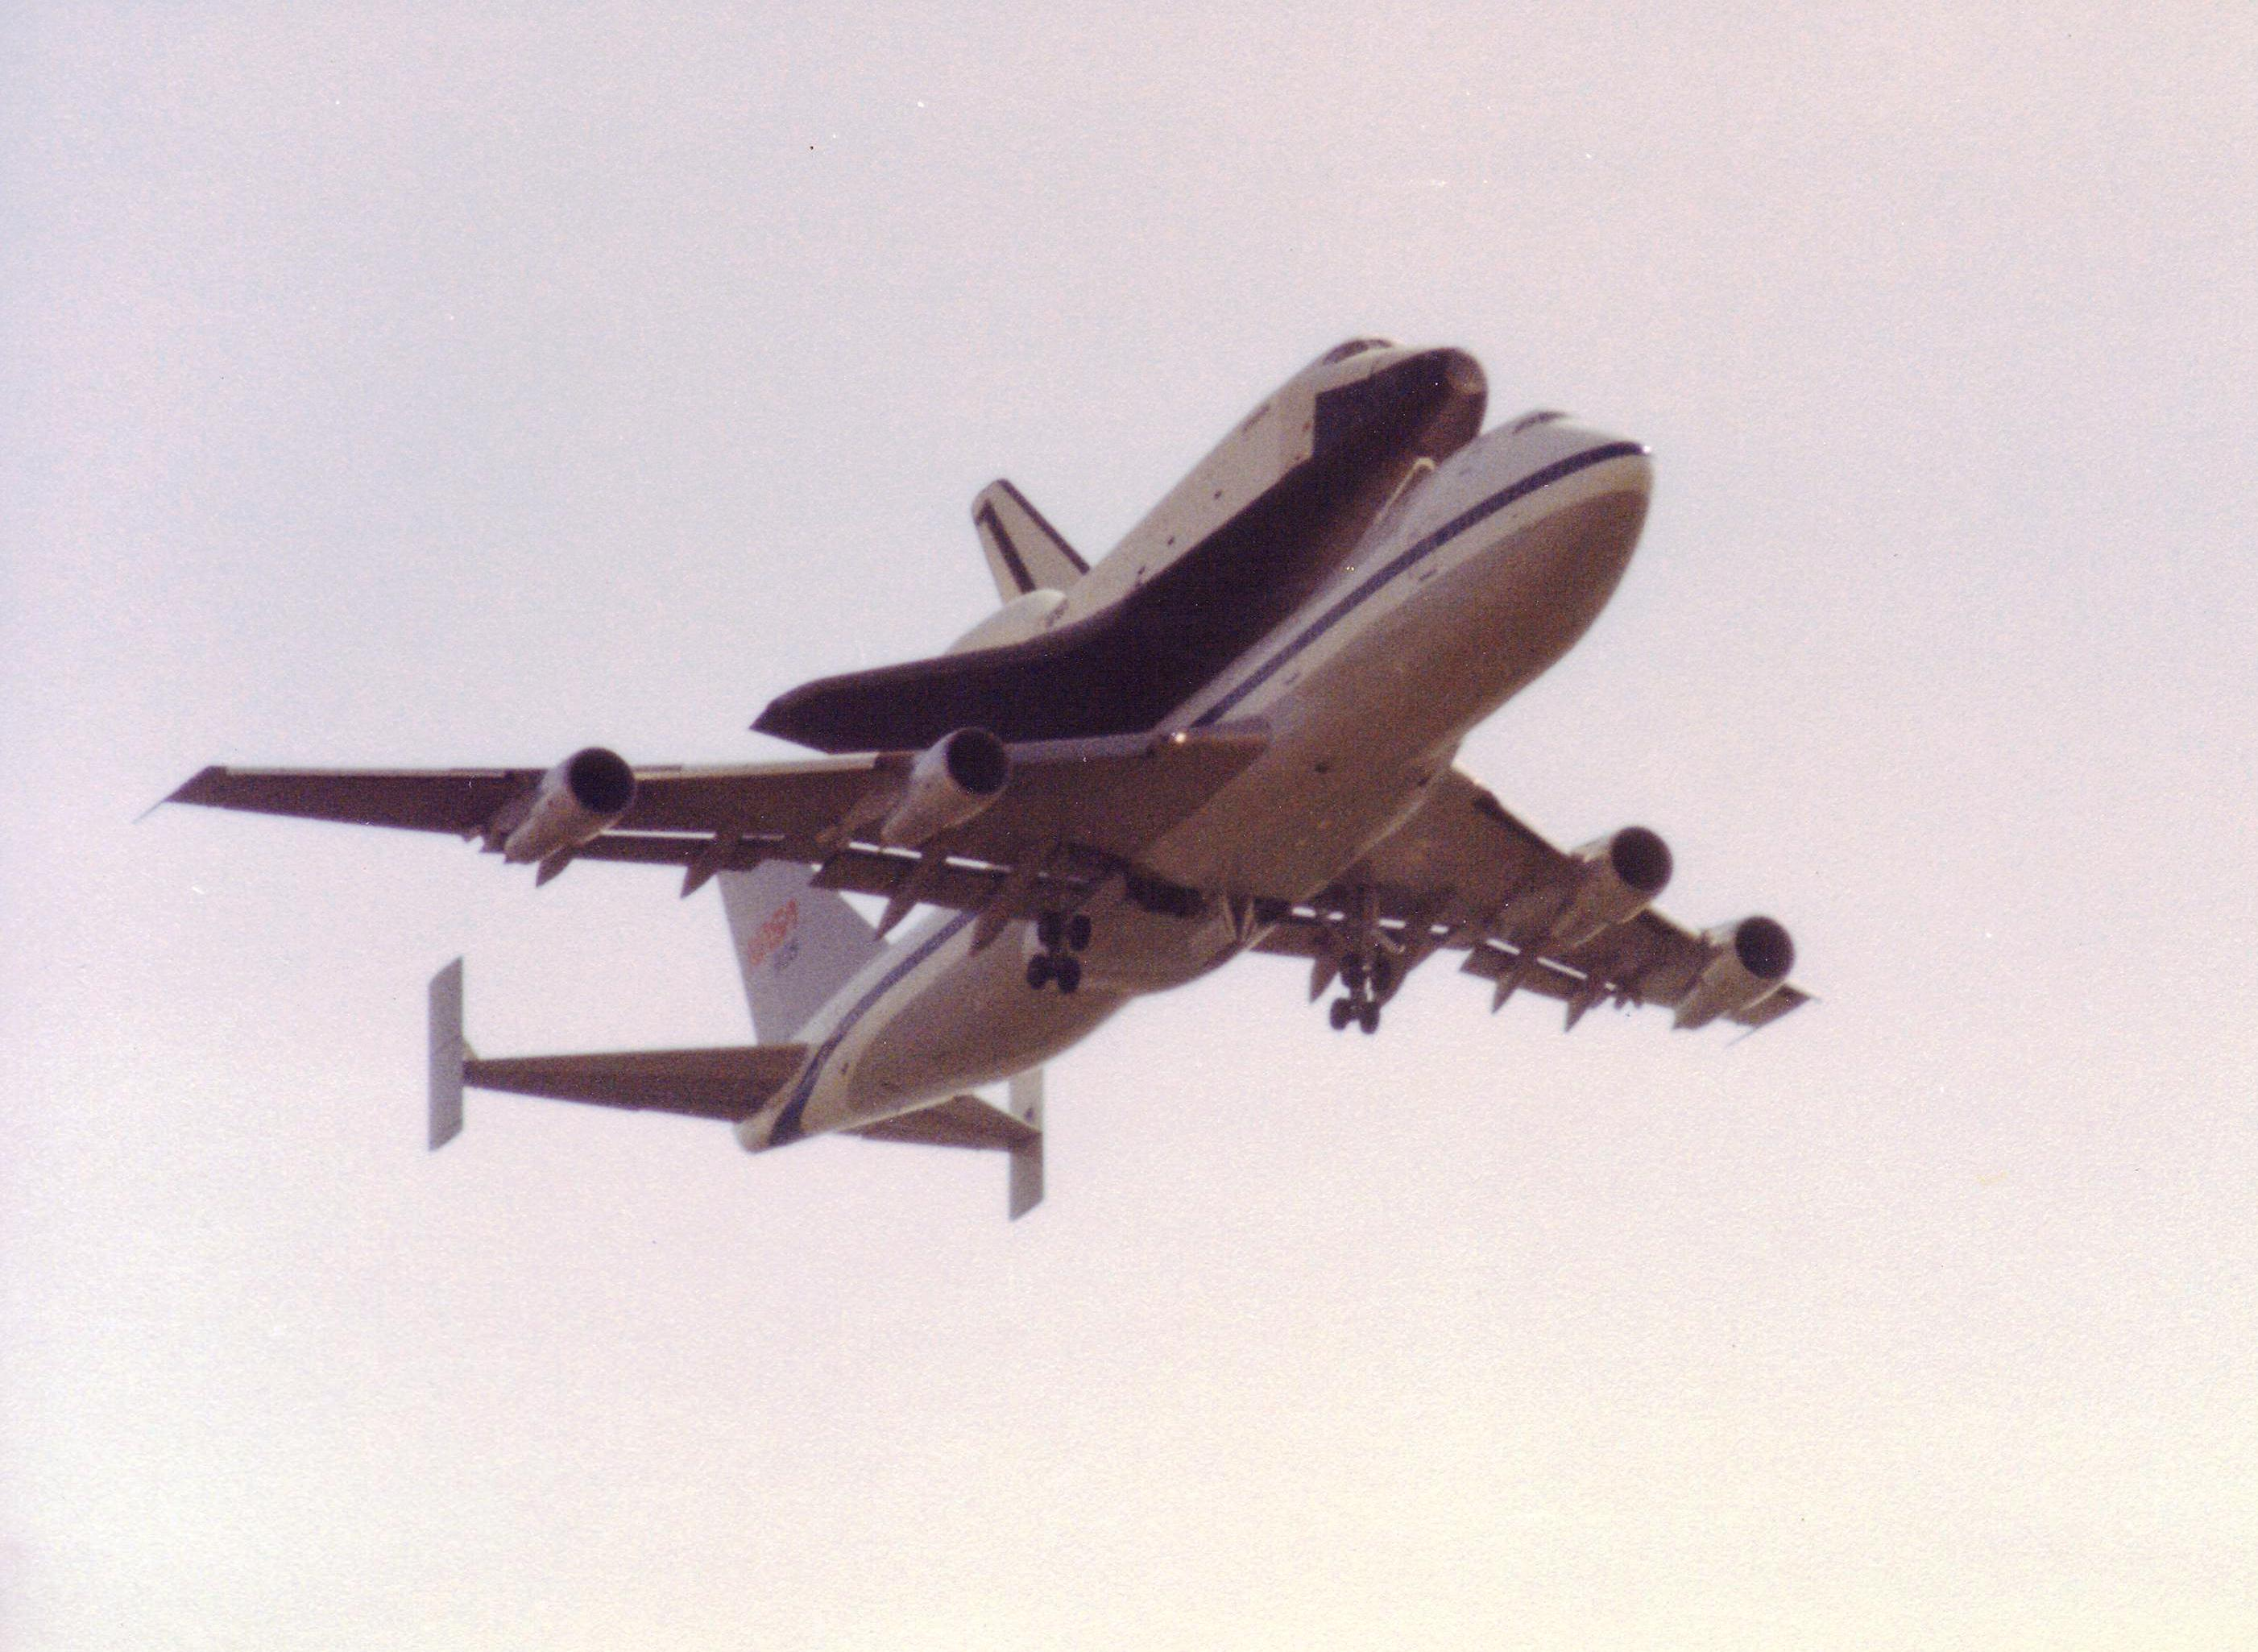 B747 & Shuttle Enterprise Combo overflight 05-Jun-1983